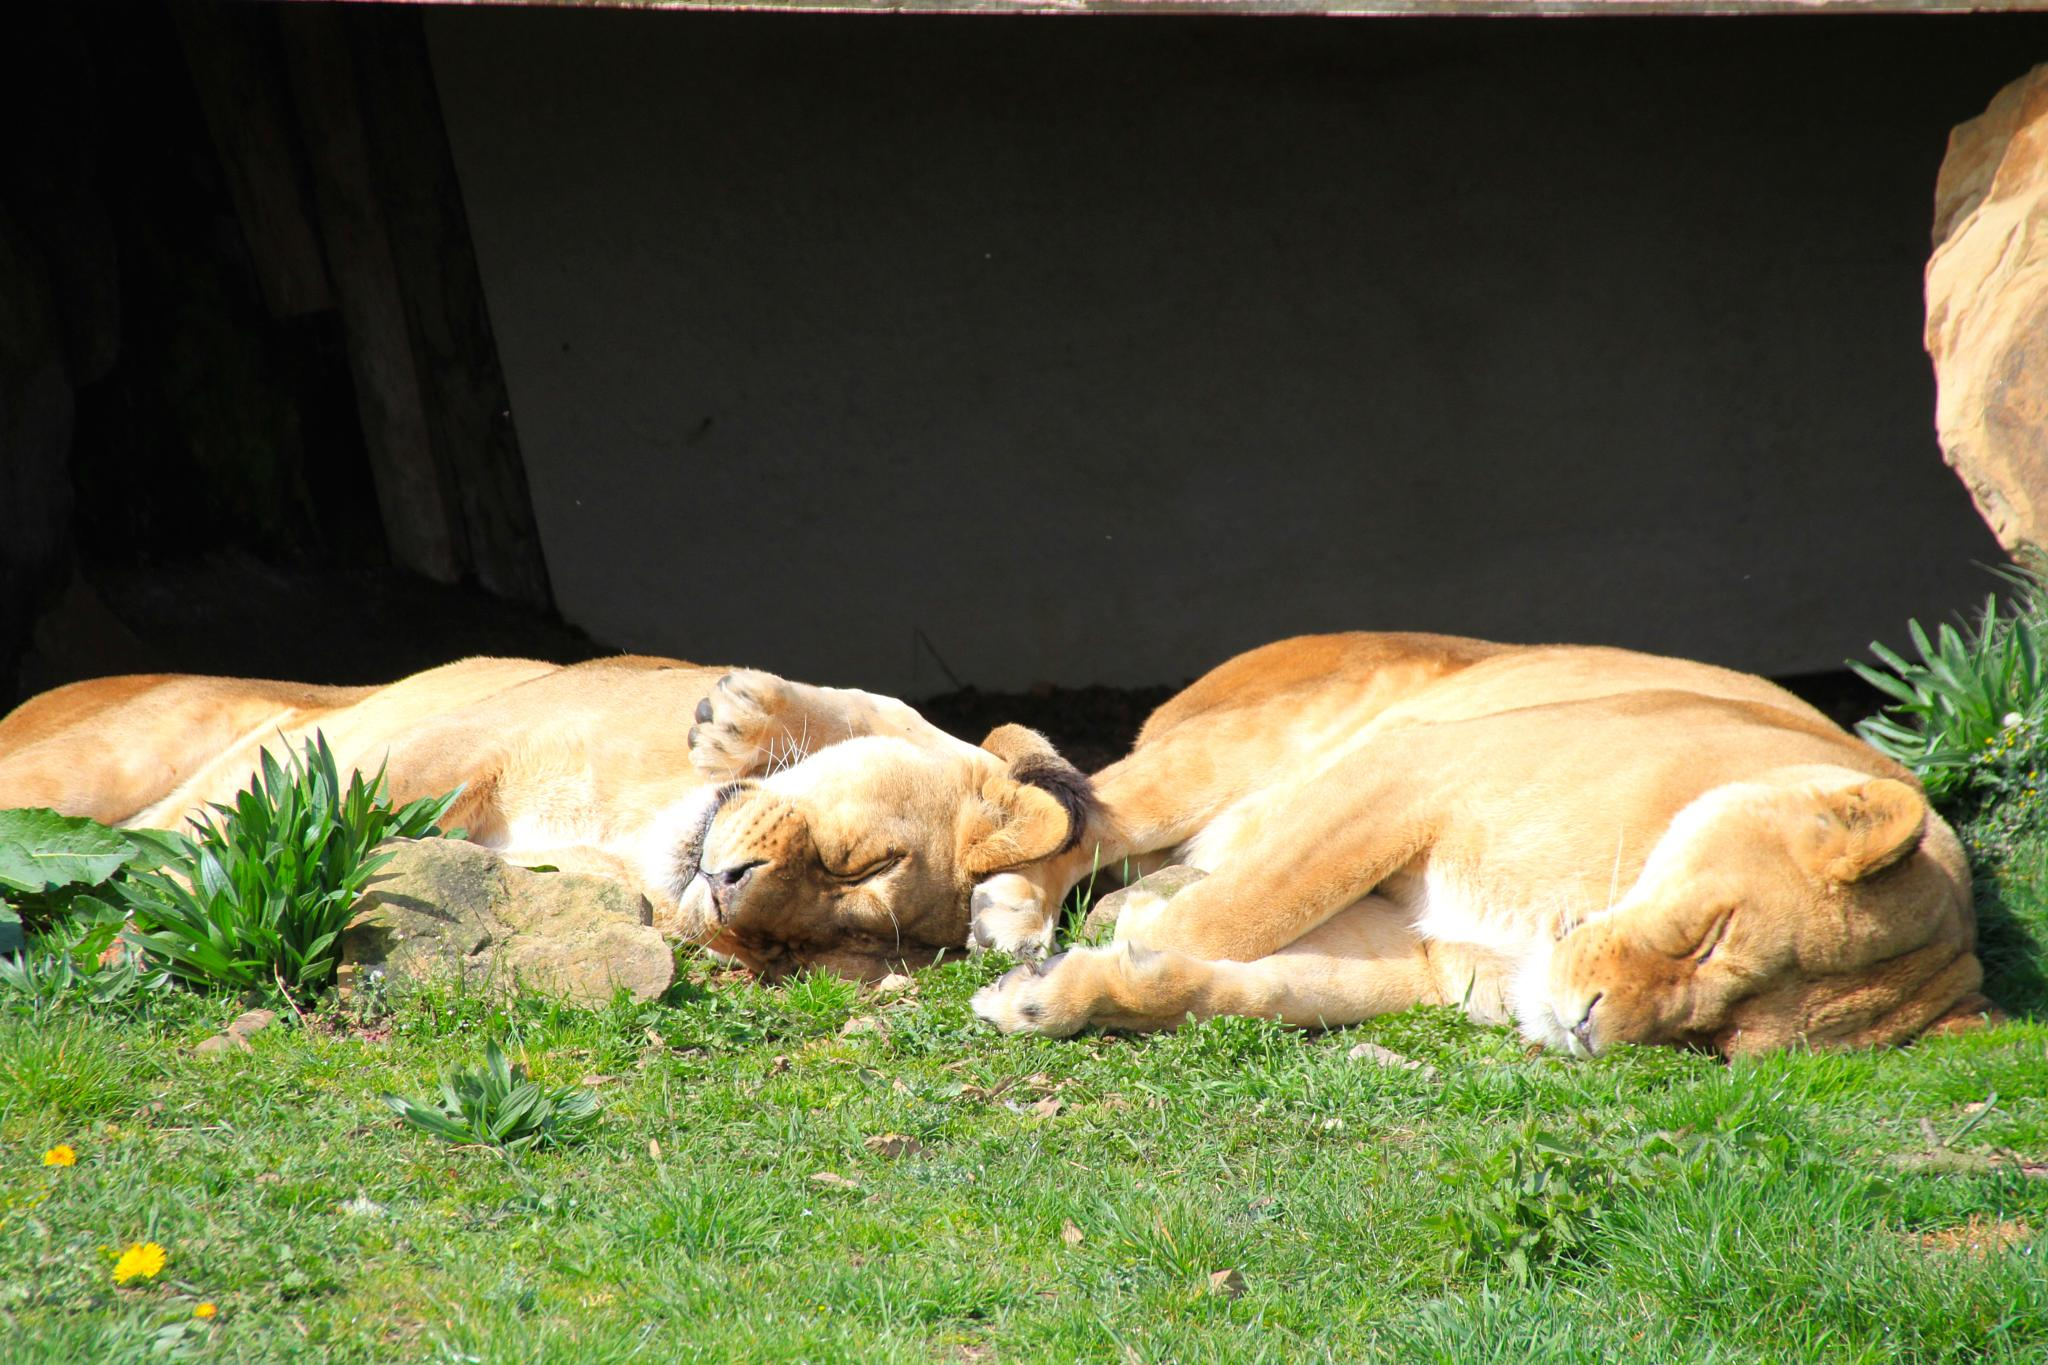 Lions - Lazy Days by Martin Roper